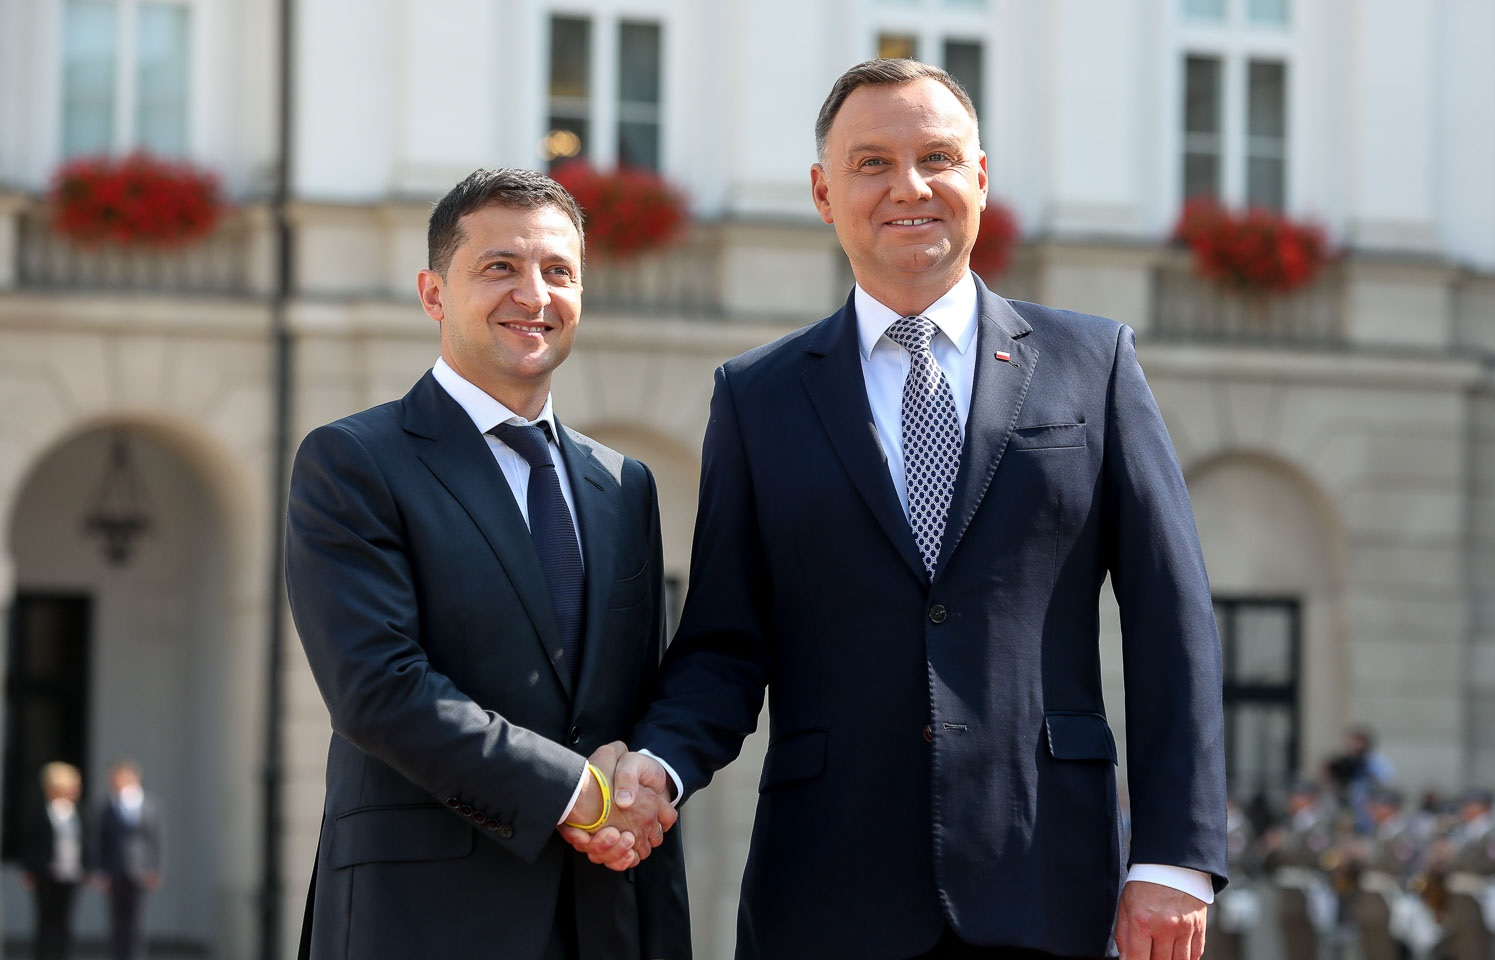 Not Allowed To Speak in Jerusalem, Zelensky and Duda Rewrite History At Poland's Holocaust Remembrance Event